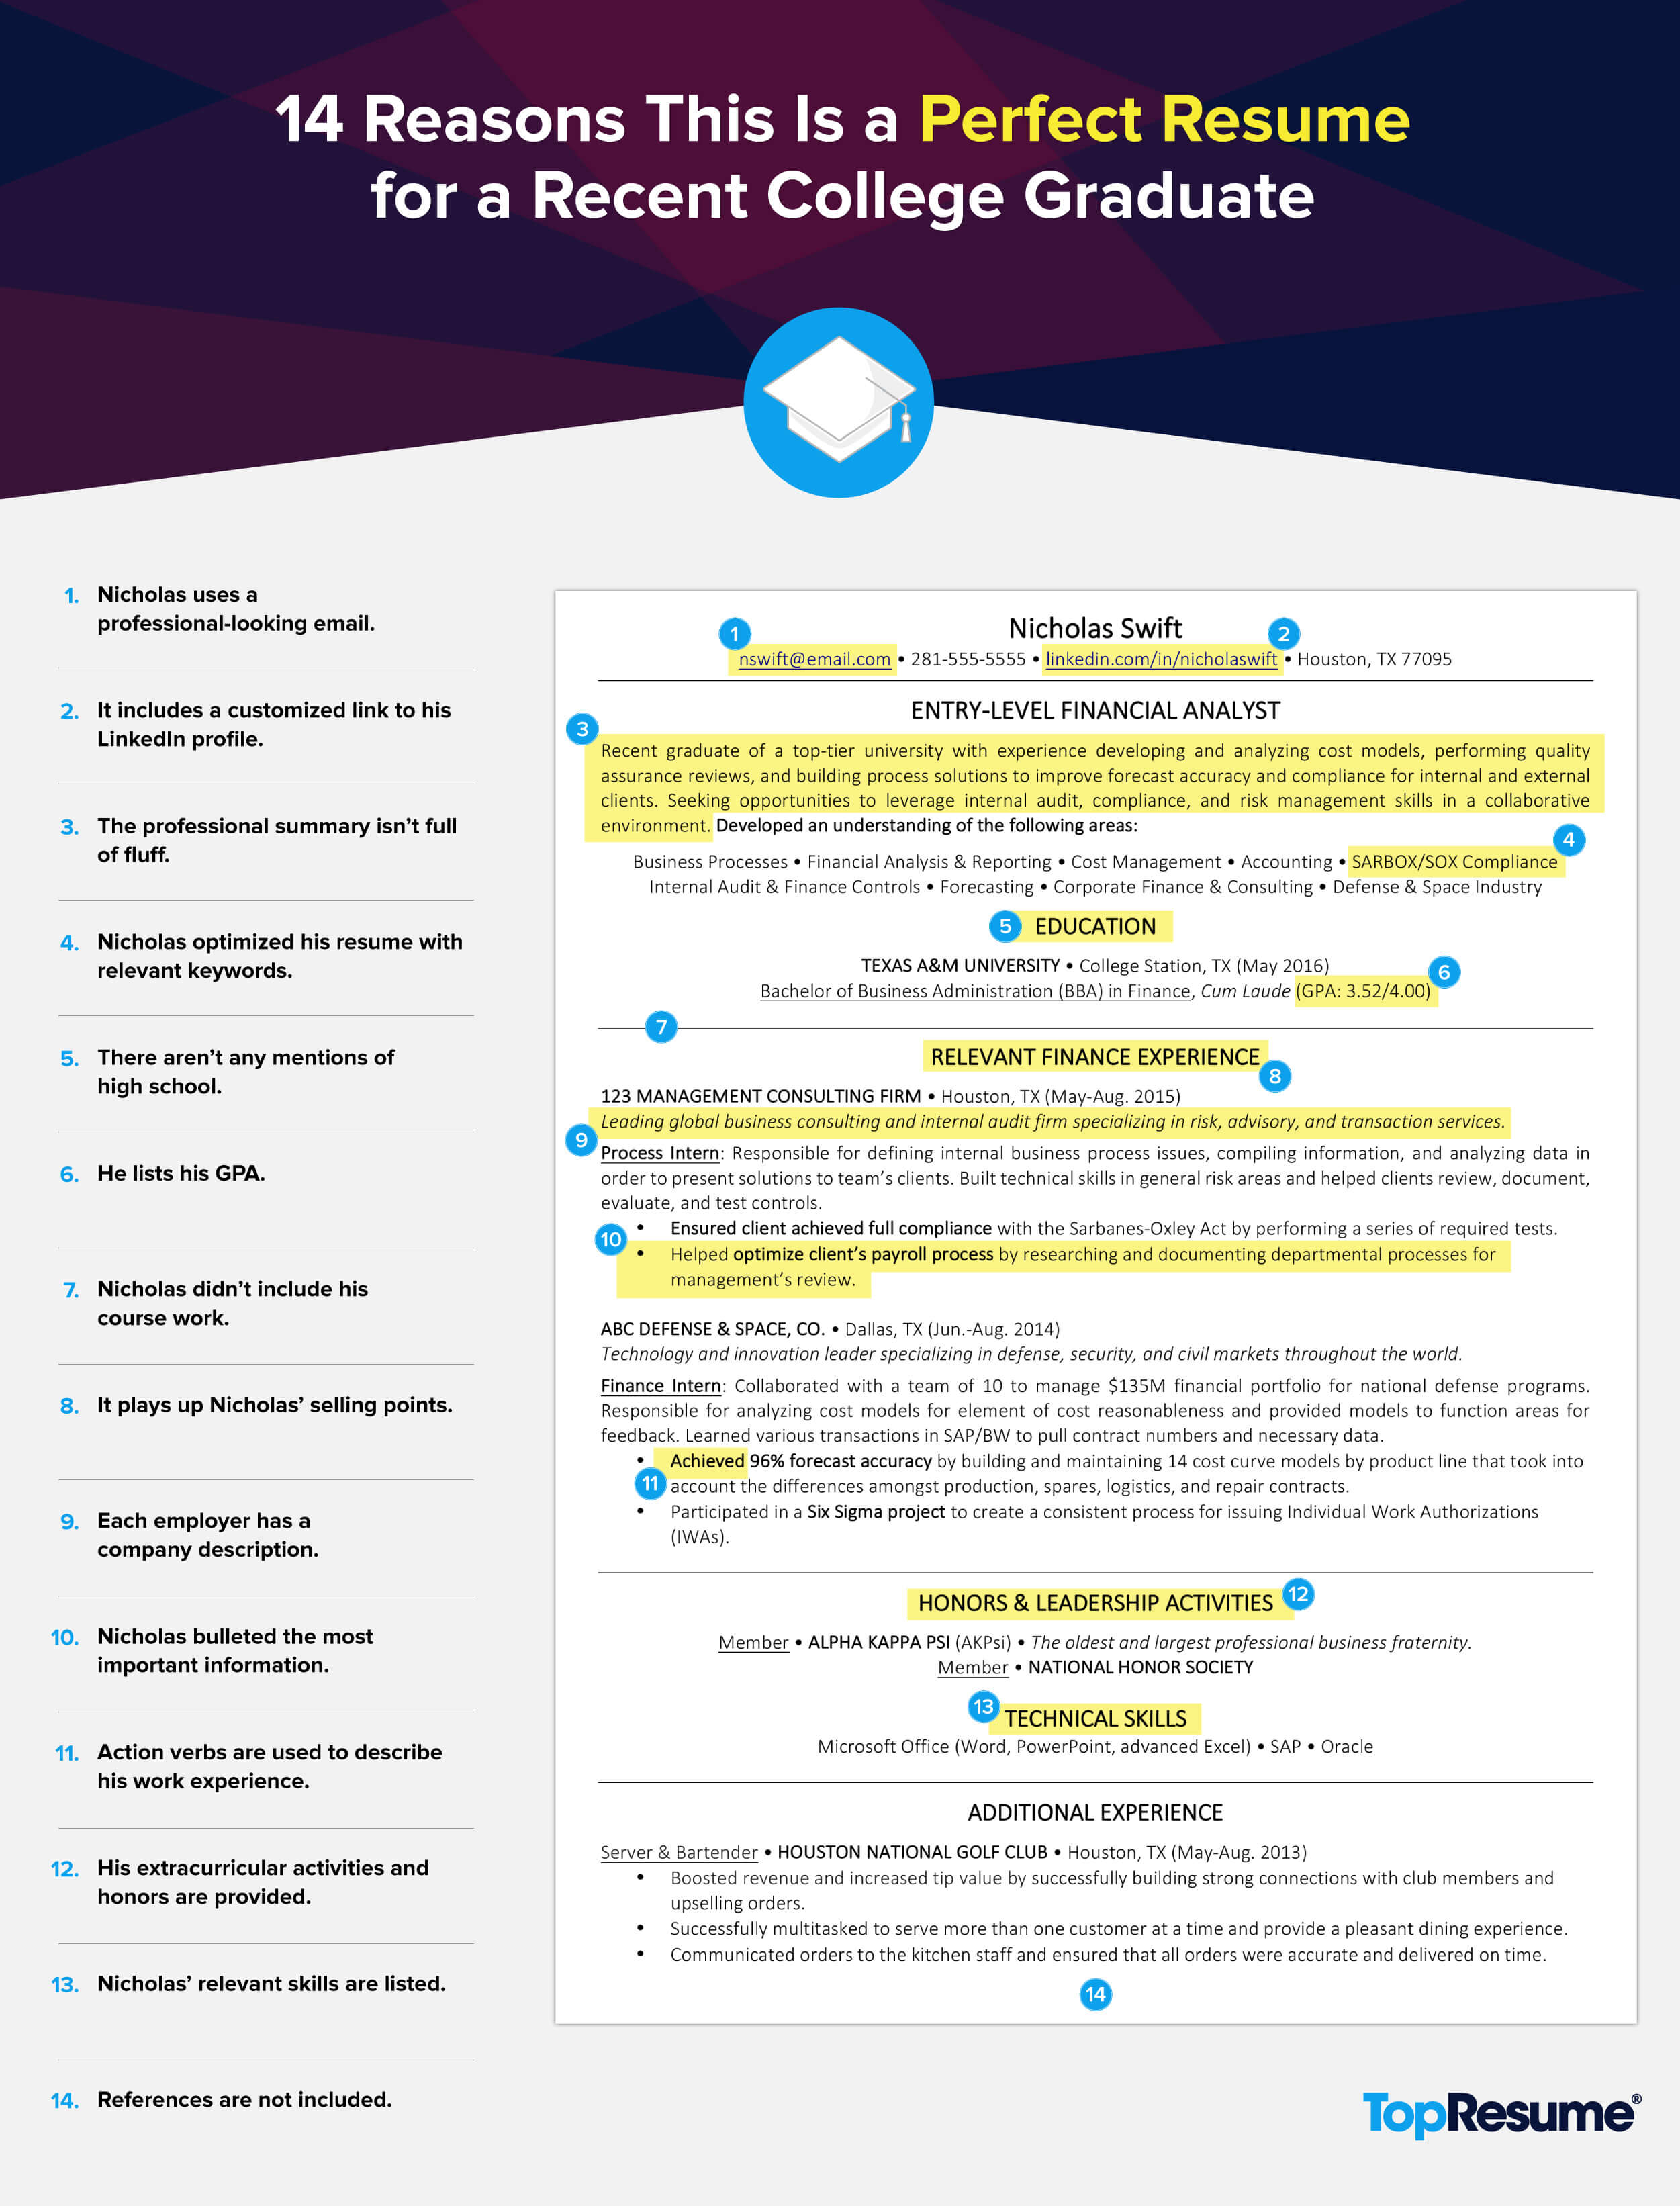 14 Reasons This is a Perfect Recent College Graduate Resume ...